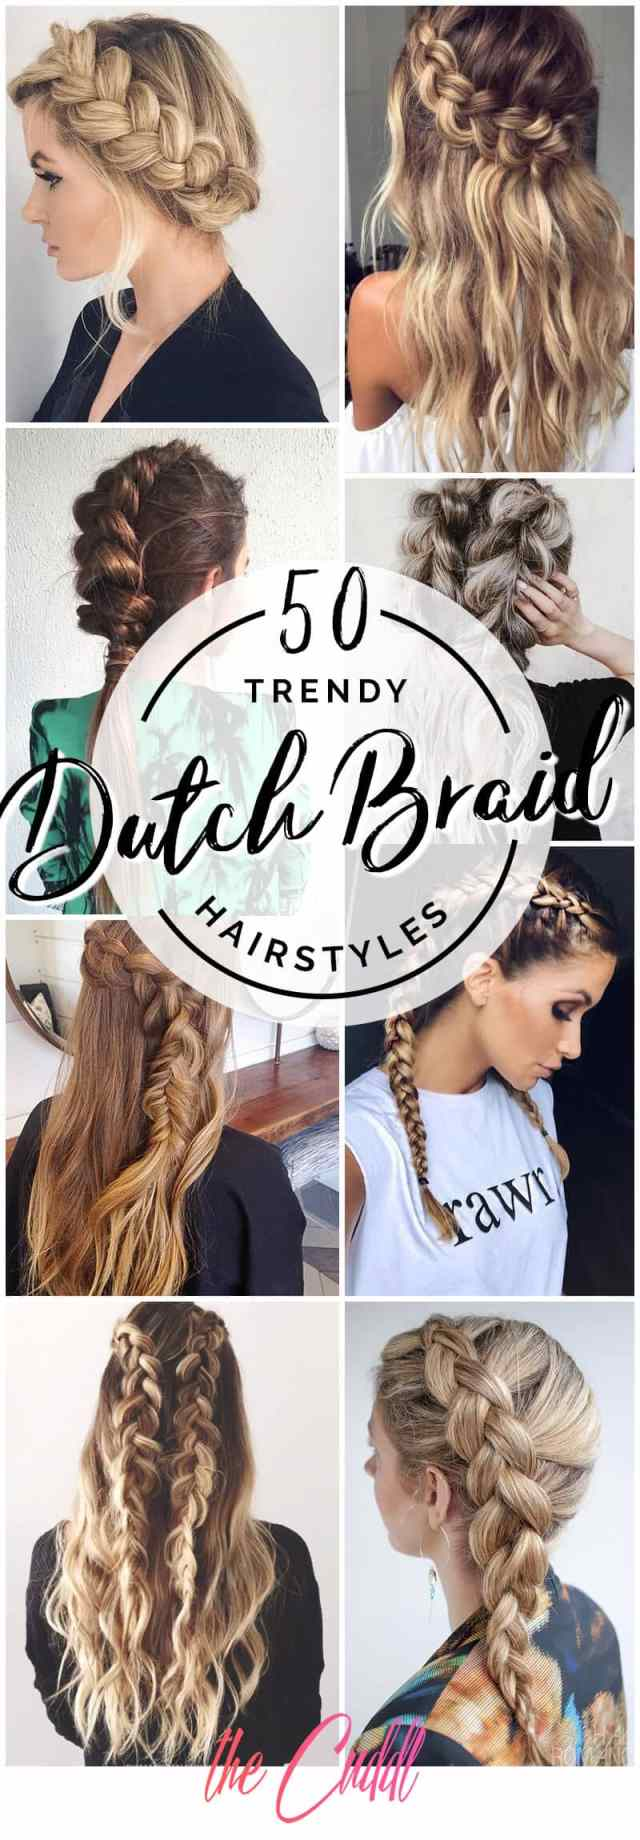 50 trendy dutch braids hairstyle ideas to keep you cool in 2019